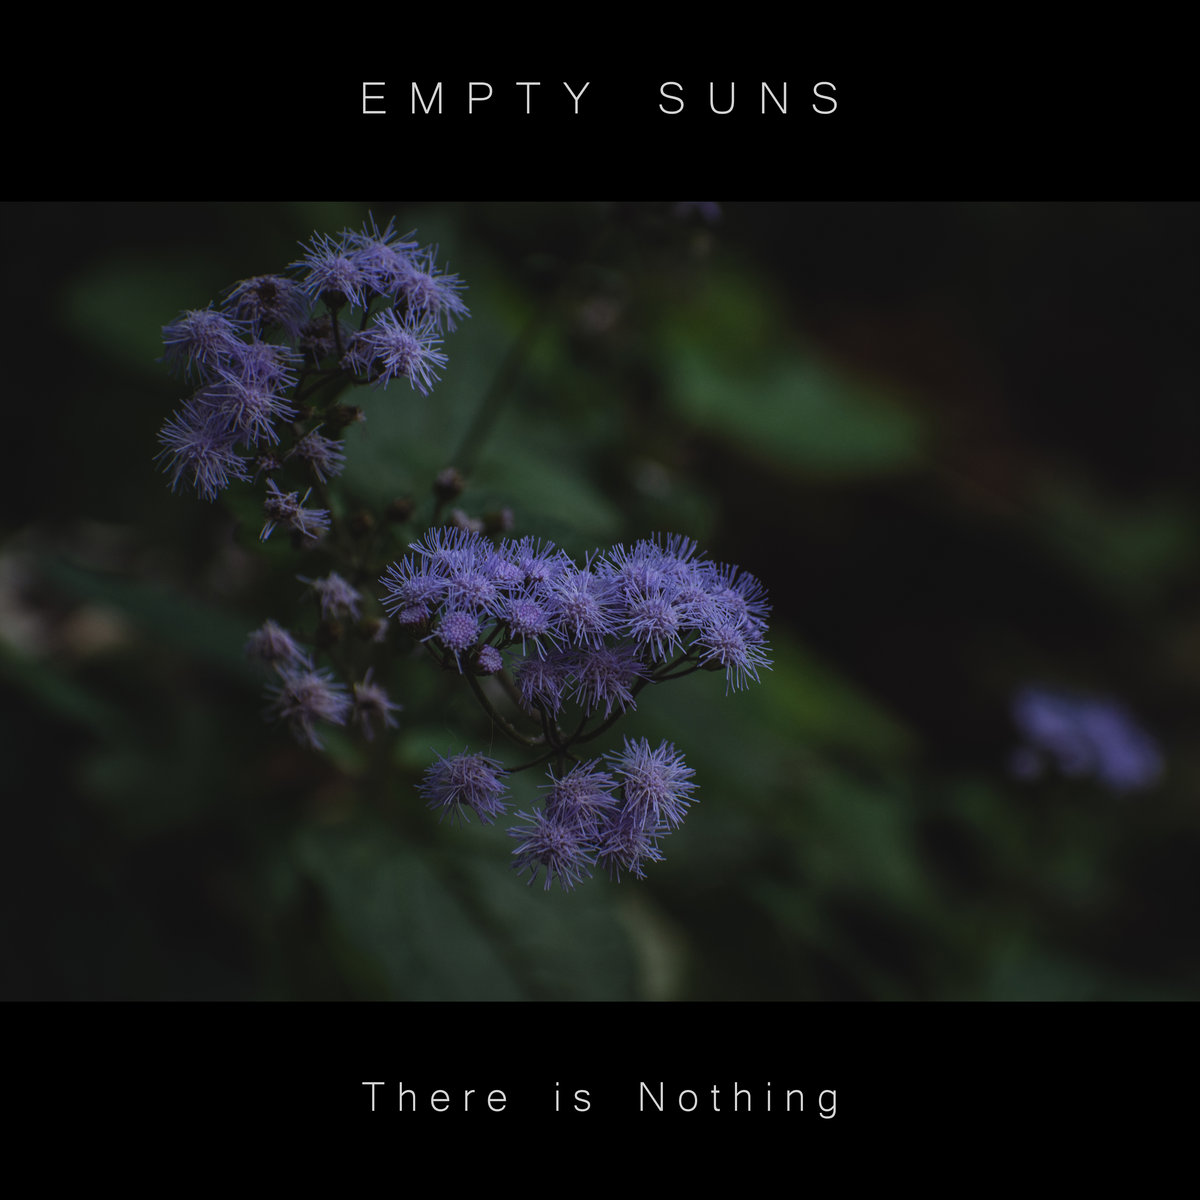 There is Nothing by Empty Suns